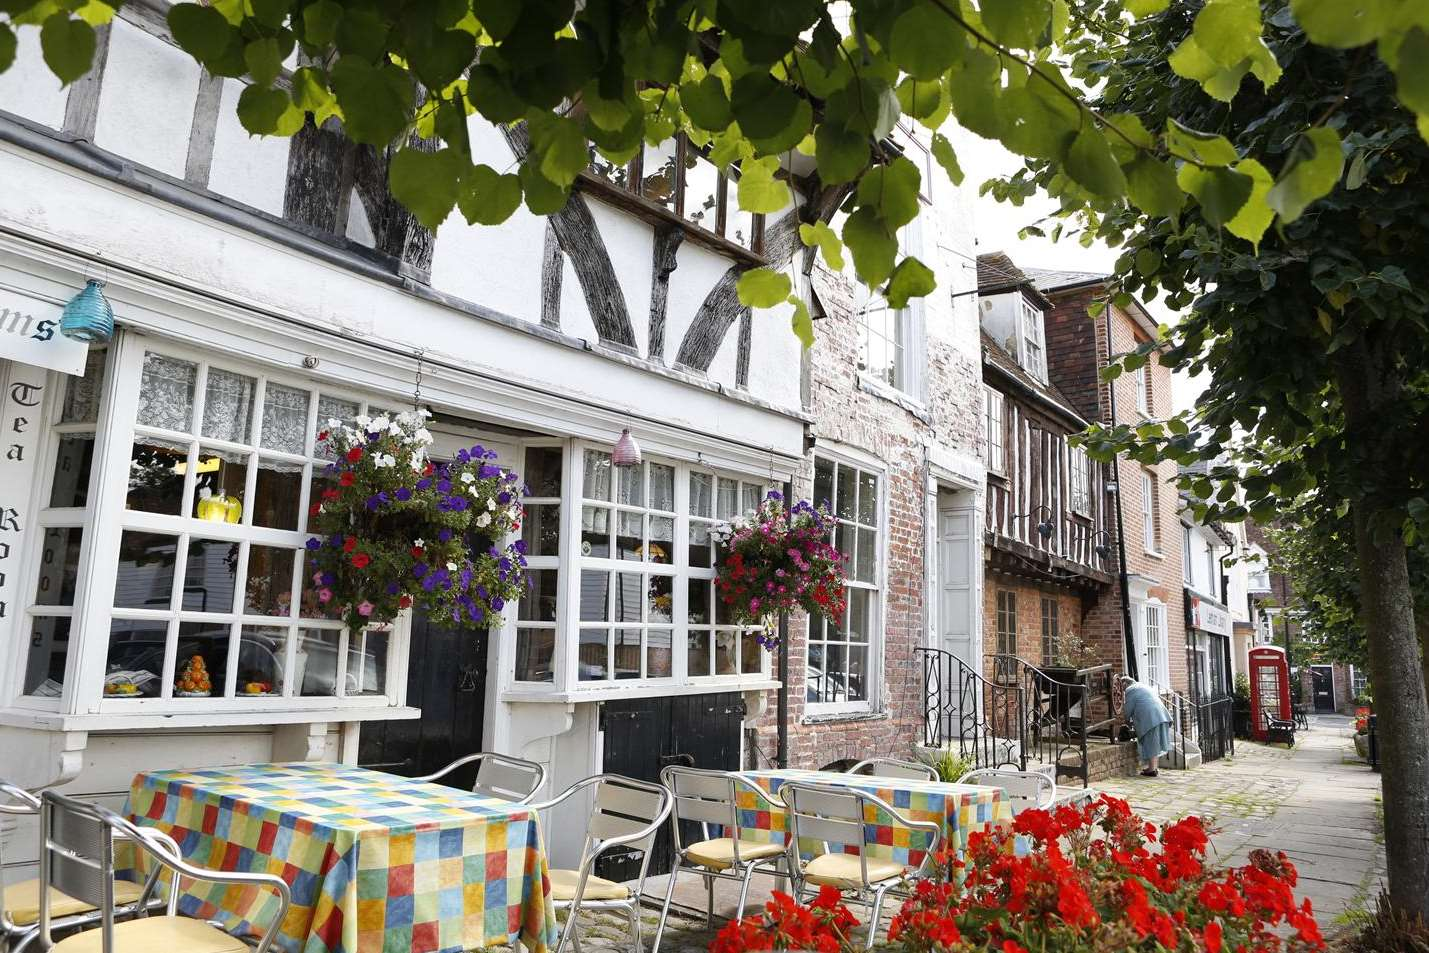 Opponents say Lenham's mix of commercial and historic buildings would be at risk if 1,745 new homes are built.